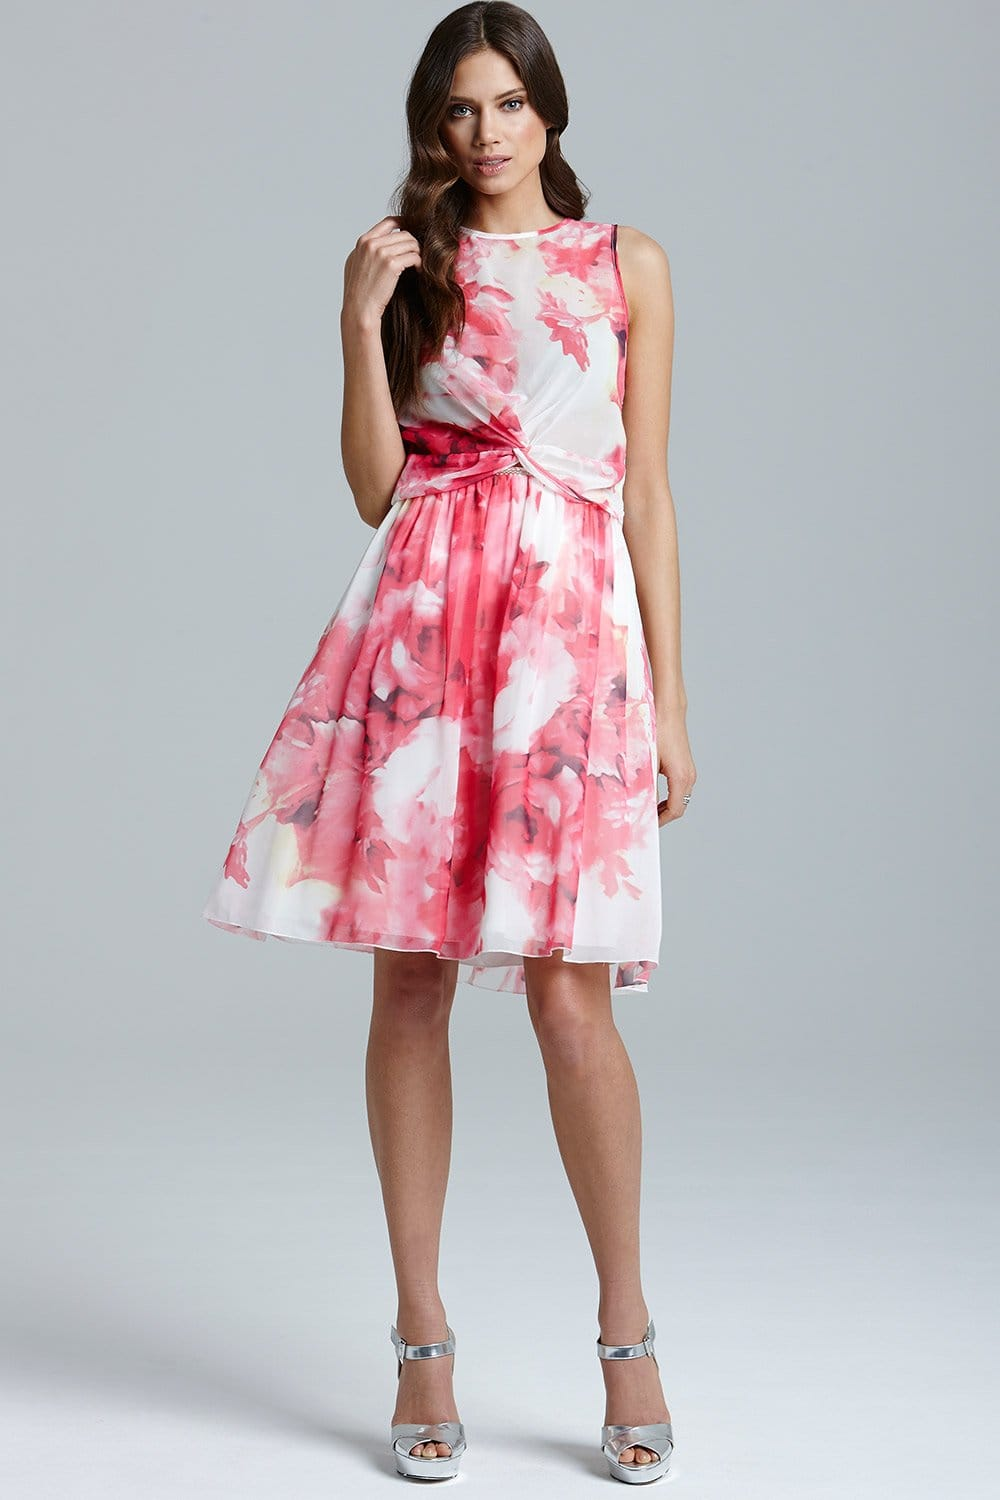 Pink Floral Print A Line Skirt - from Little Mistress UK